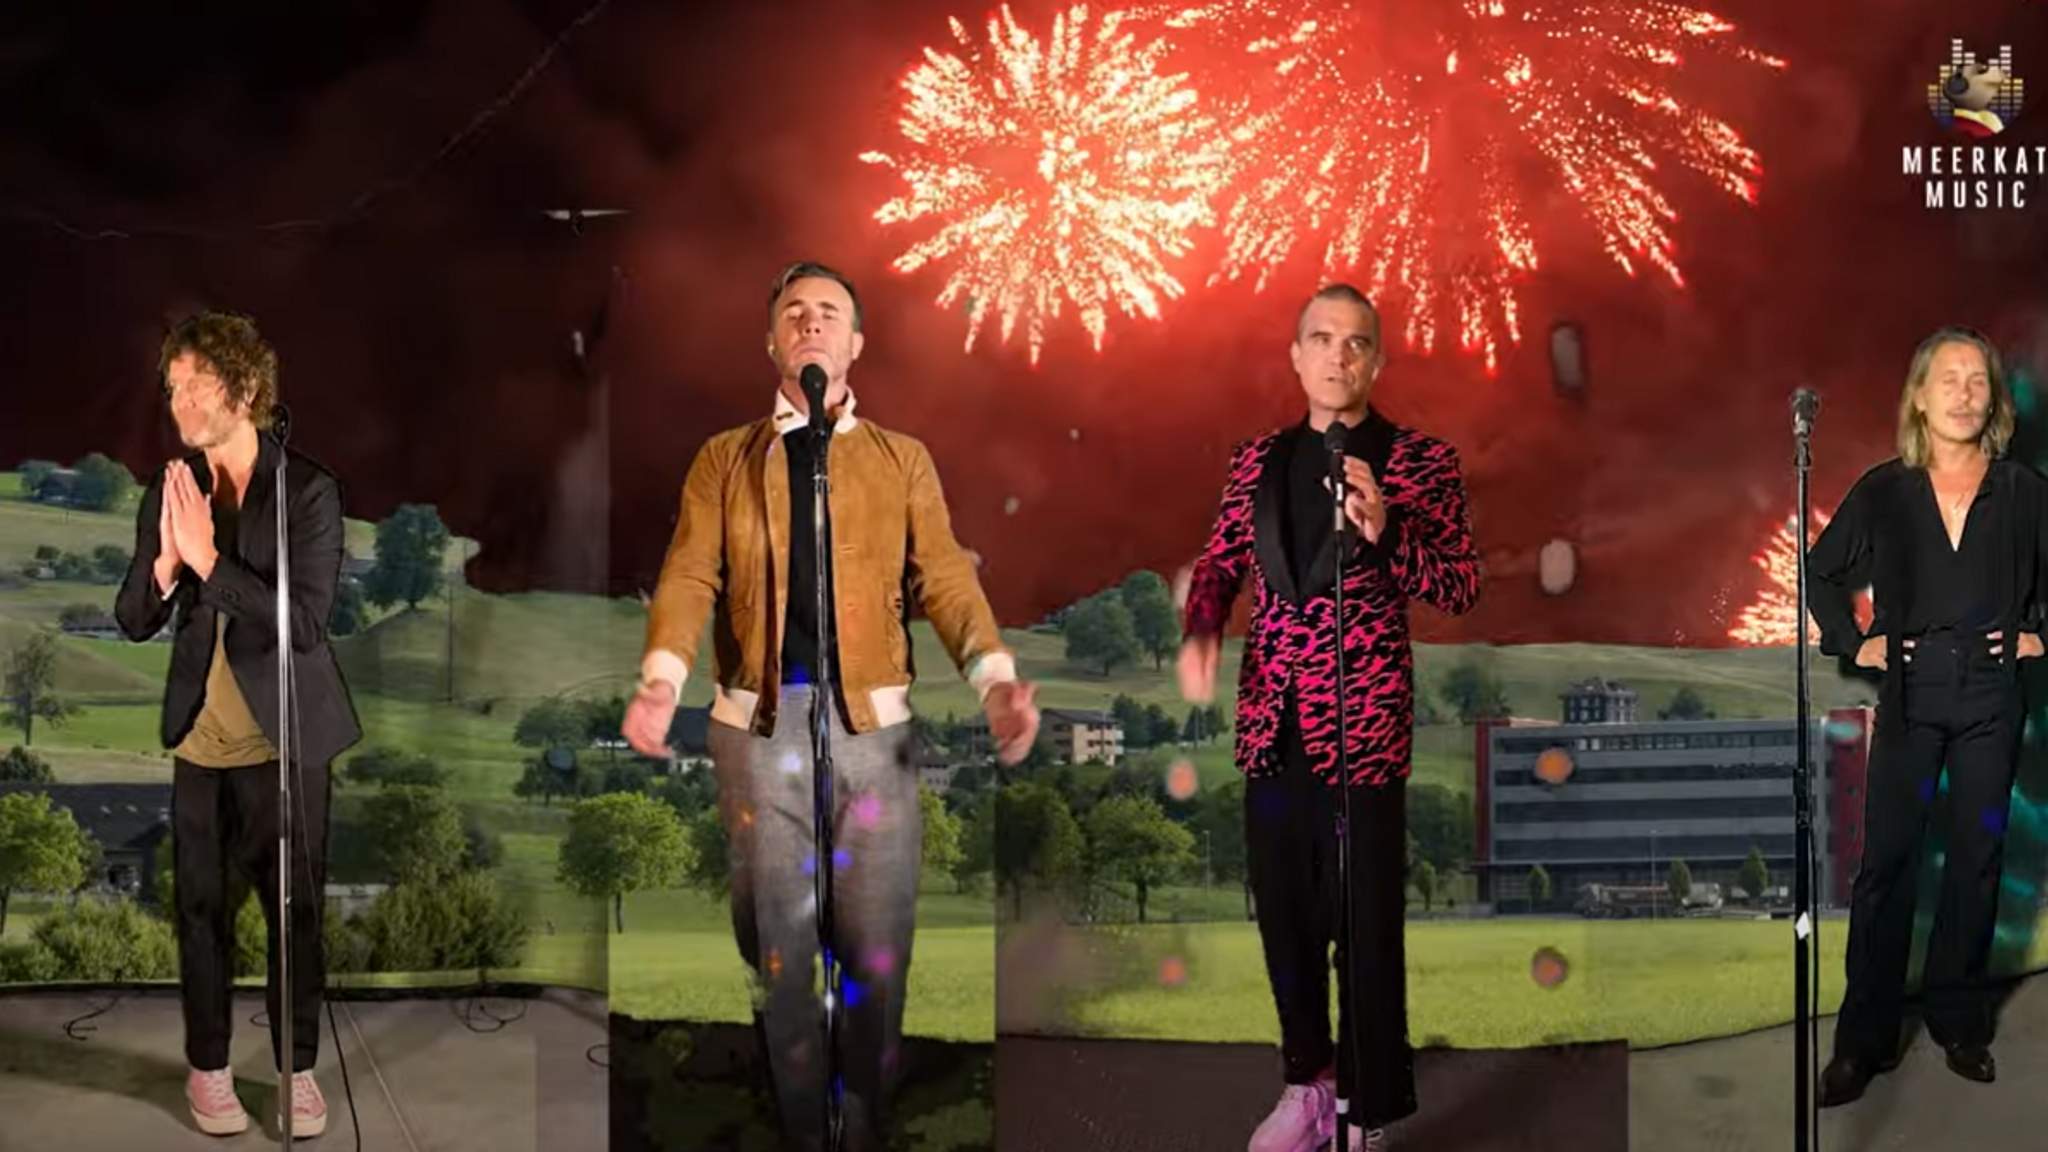 The group were backed by fireworks for part of the concert. Pic: Youtube/ Comparethemeerkat